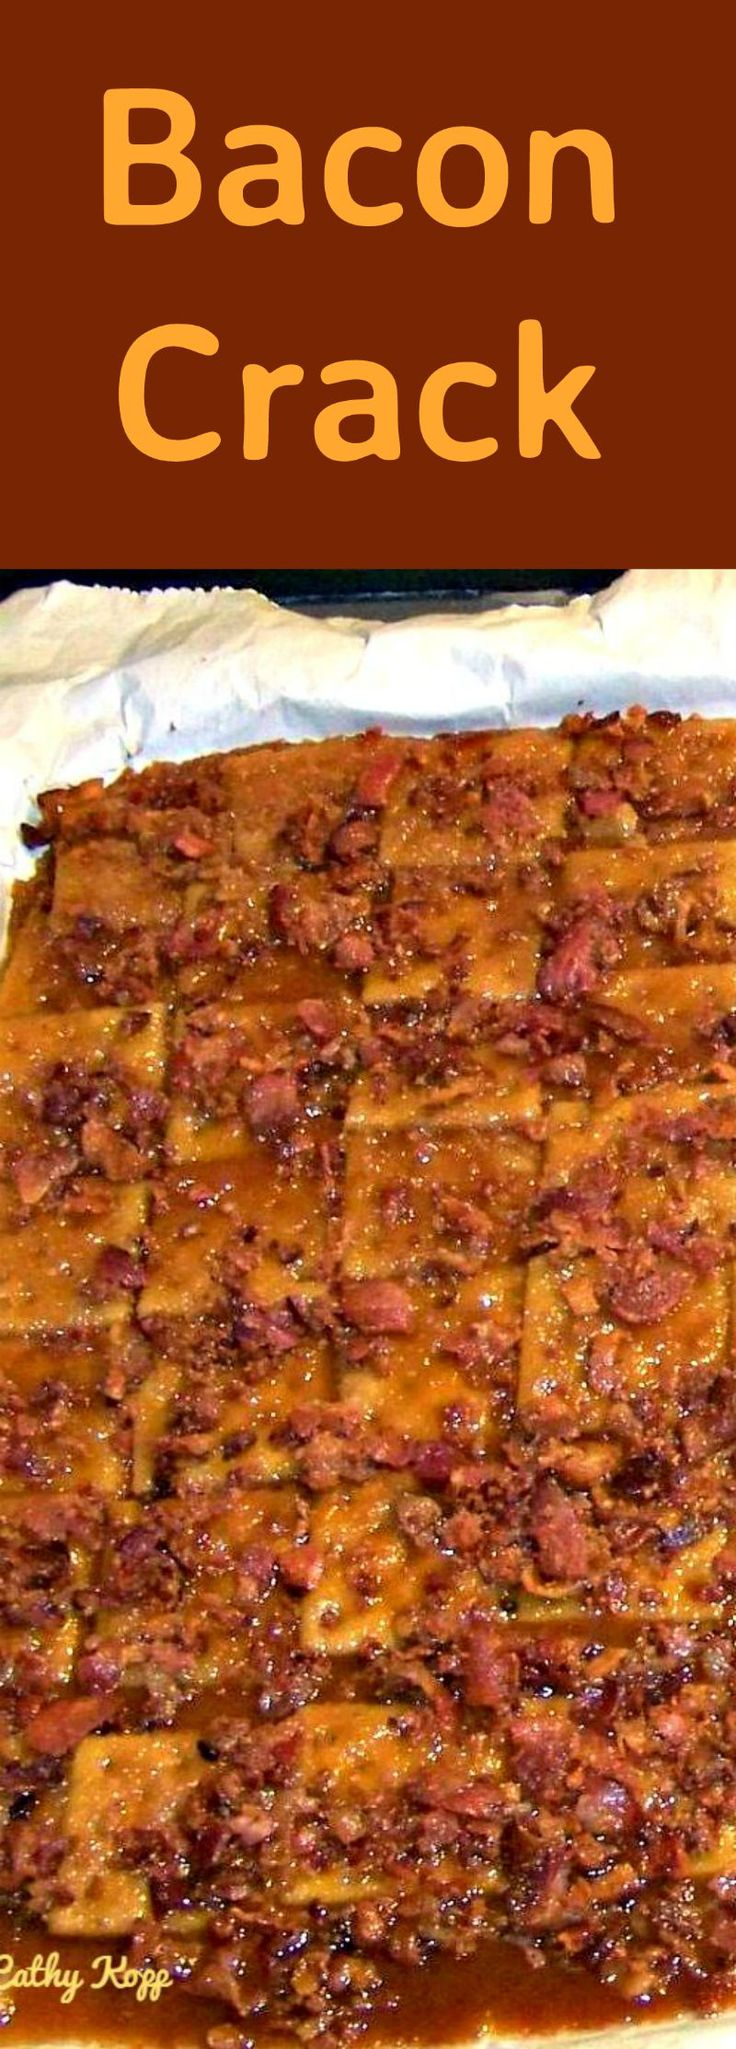 Bacon Crack. A.K.A Bacon Saltine Cracker Candy. If you've never tried this you're missing out! | Lovefoodies.com